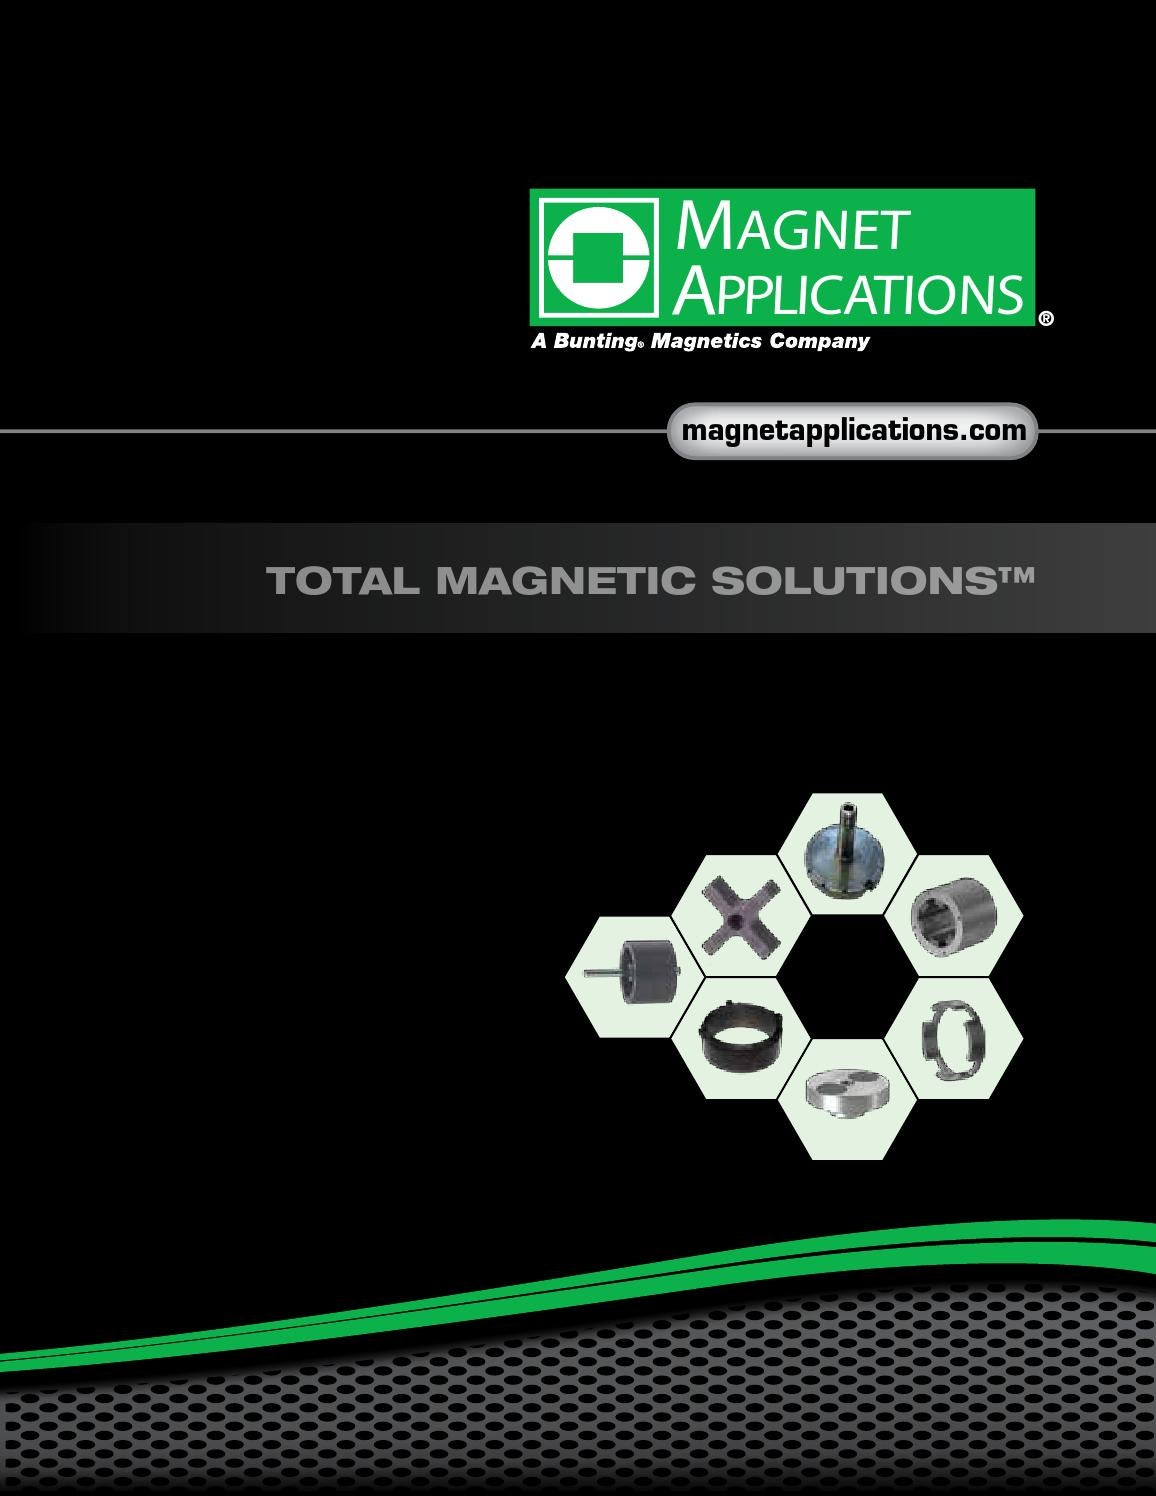 Magnet Applications, Inc  by Bunting Magnetics Co  - issuu